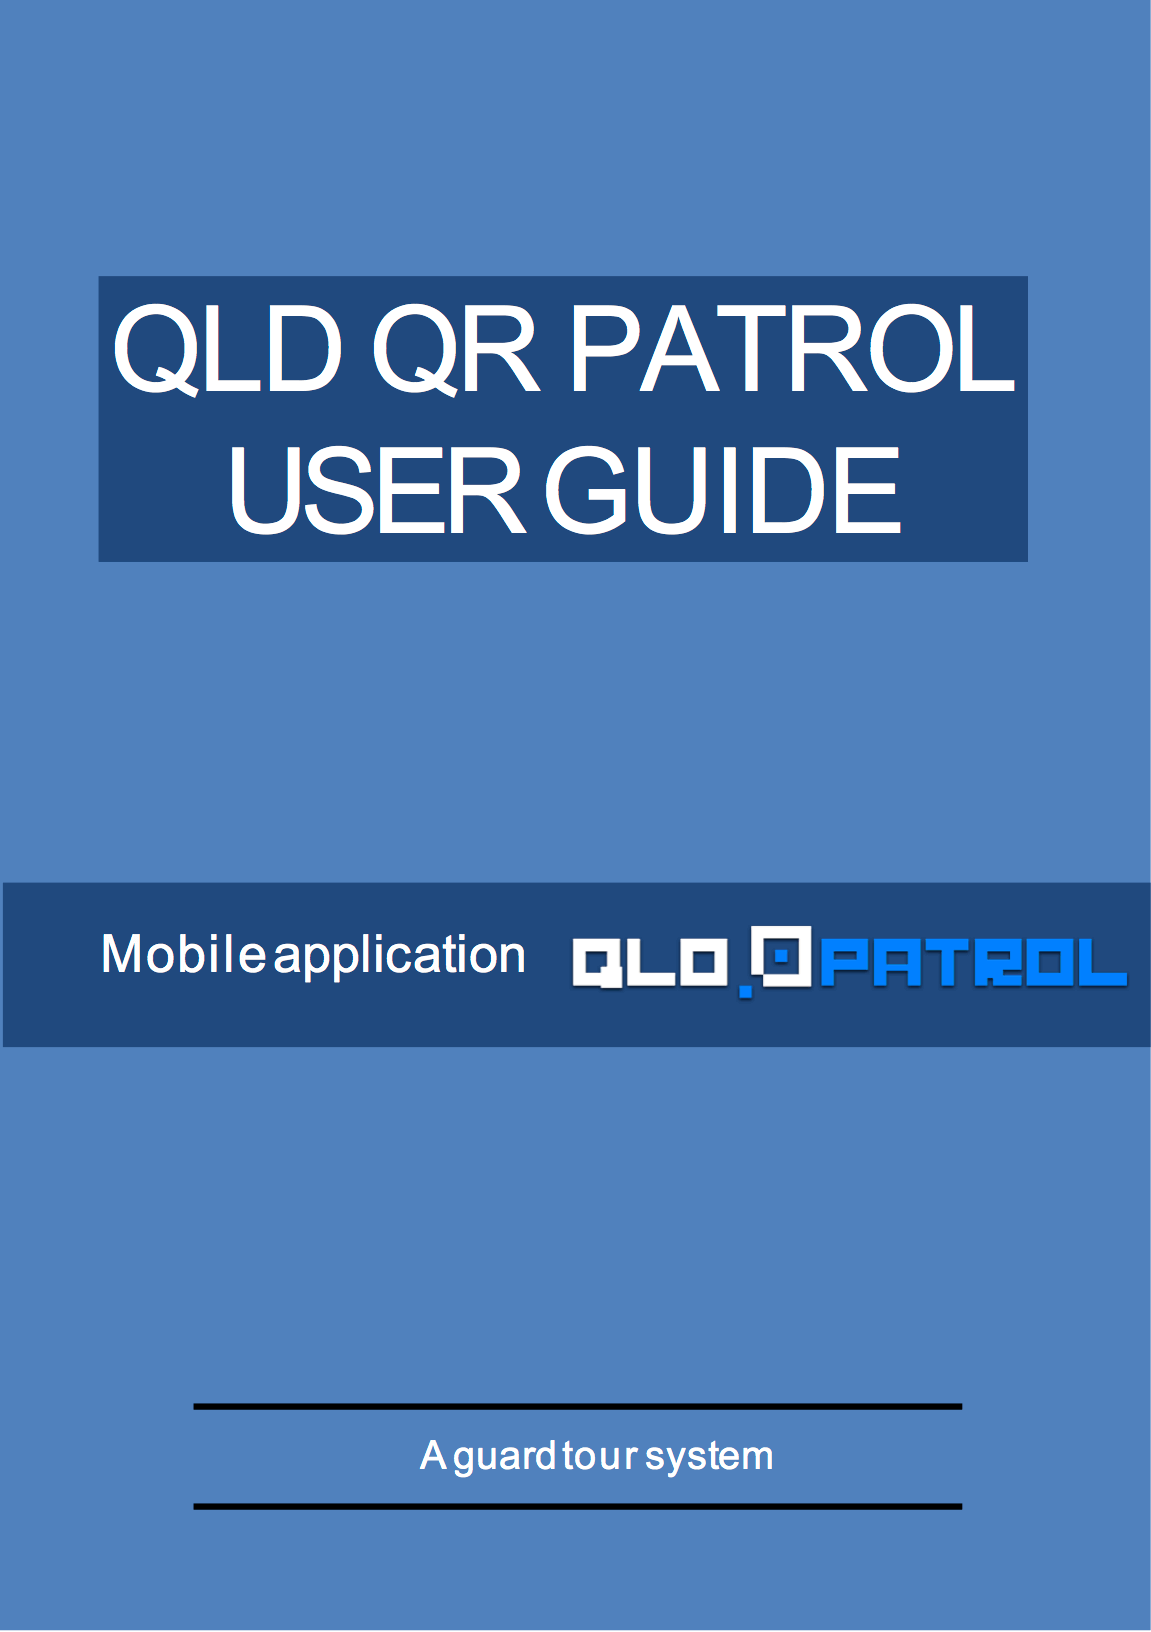 Web Application User Guide